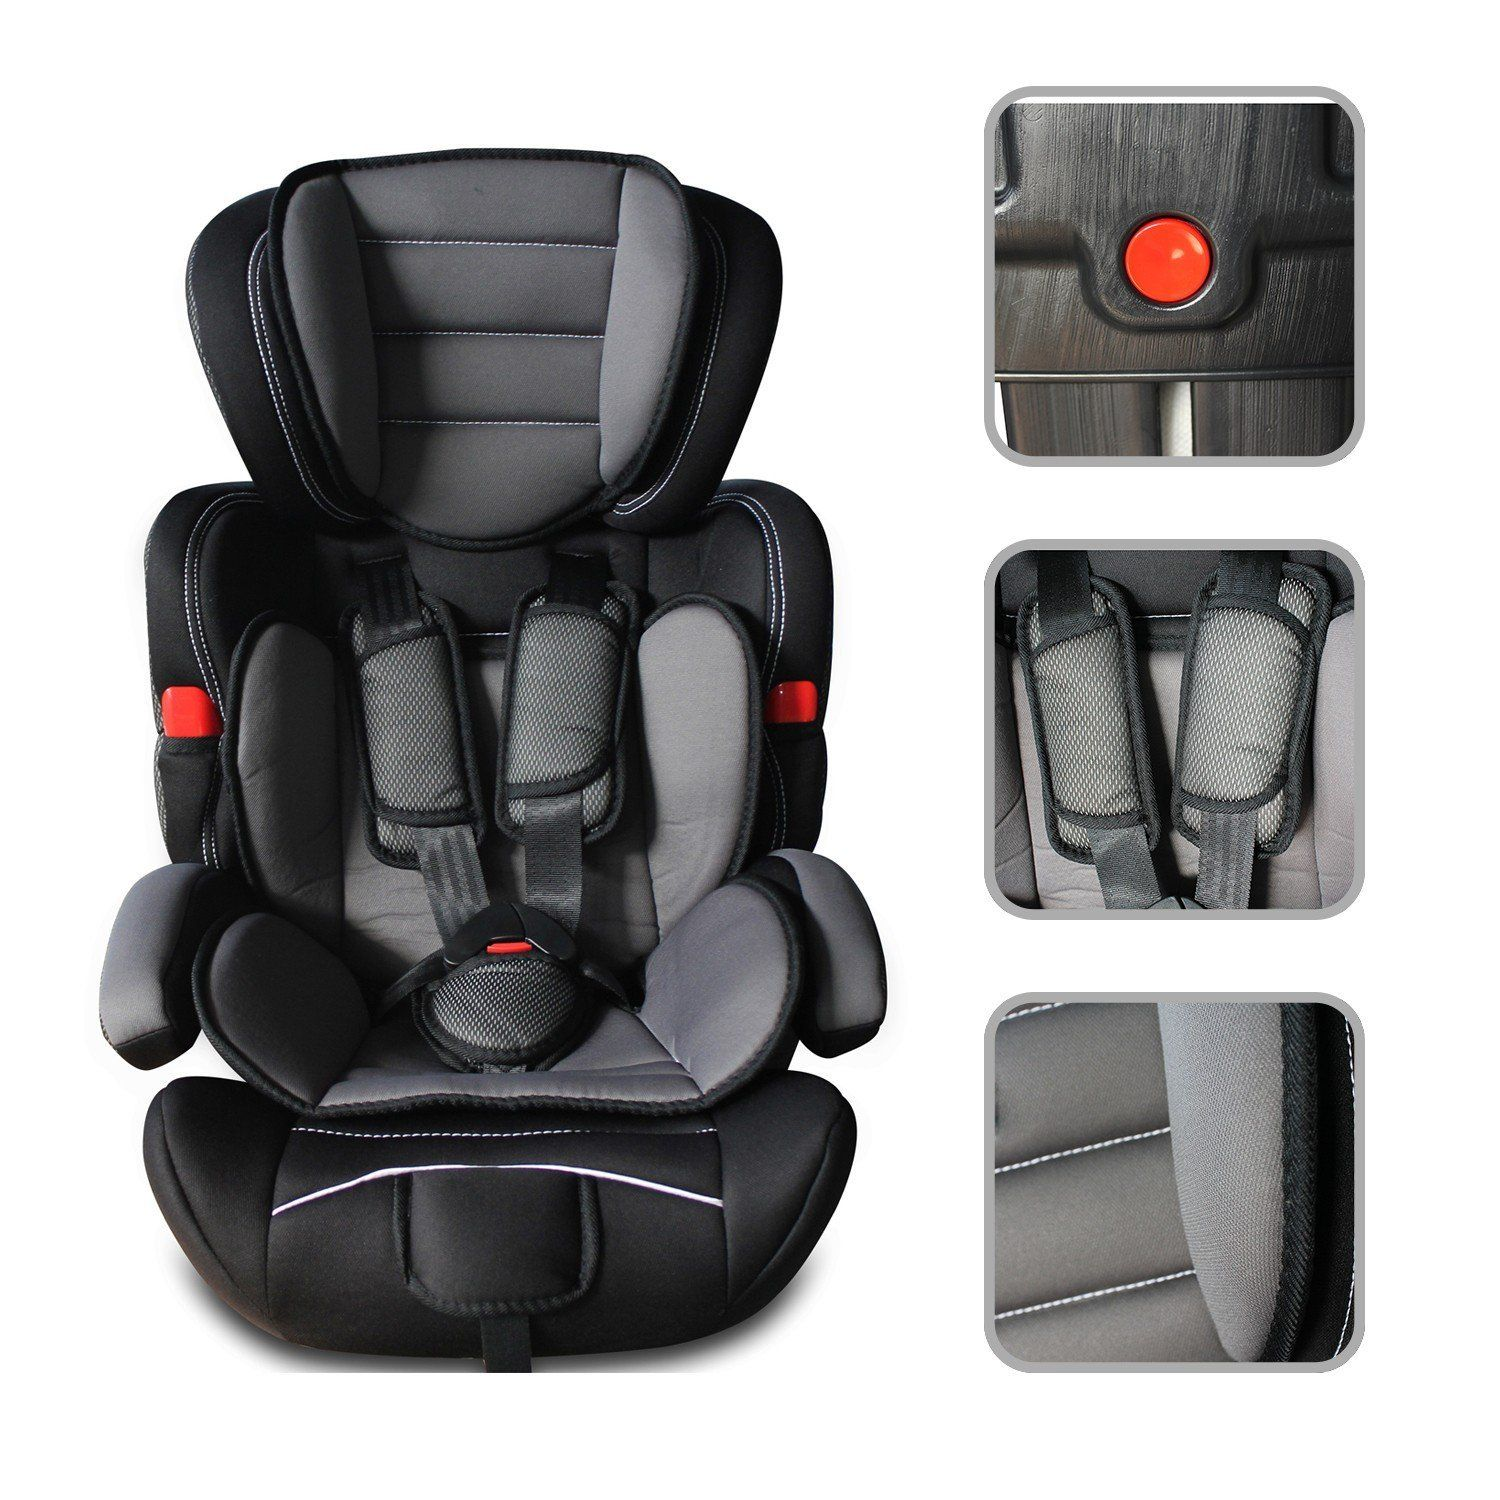 CHILD CAR SEAT WITH BOOSTER SEAT Car seats, Baby car